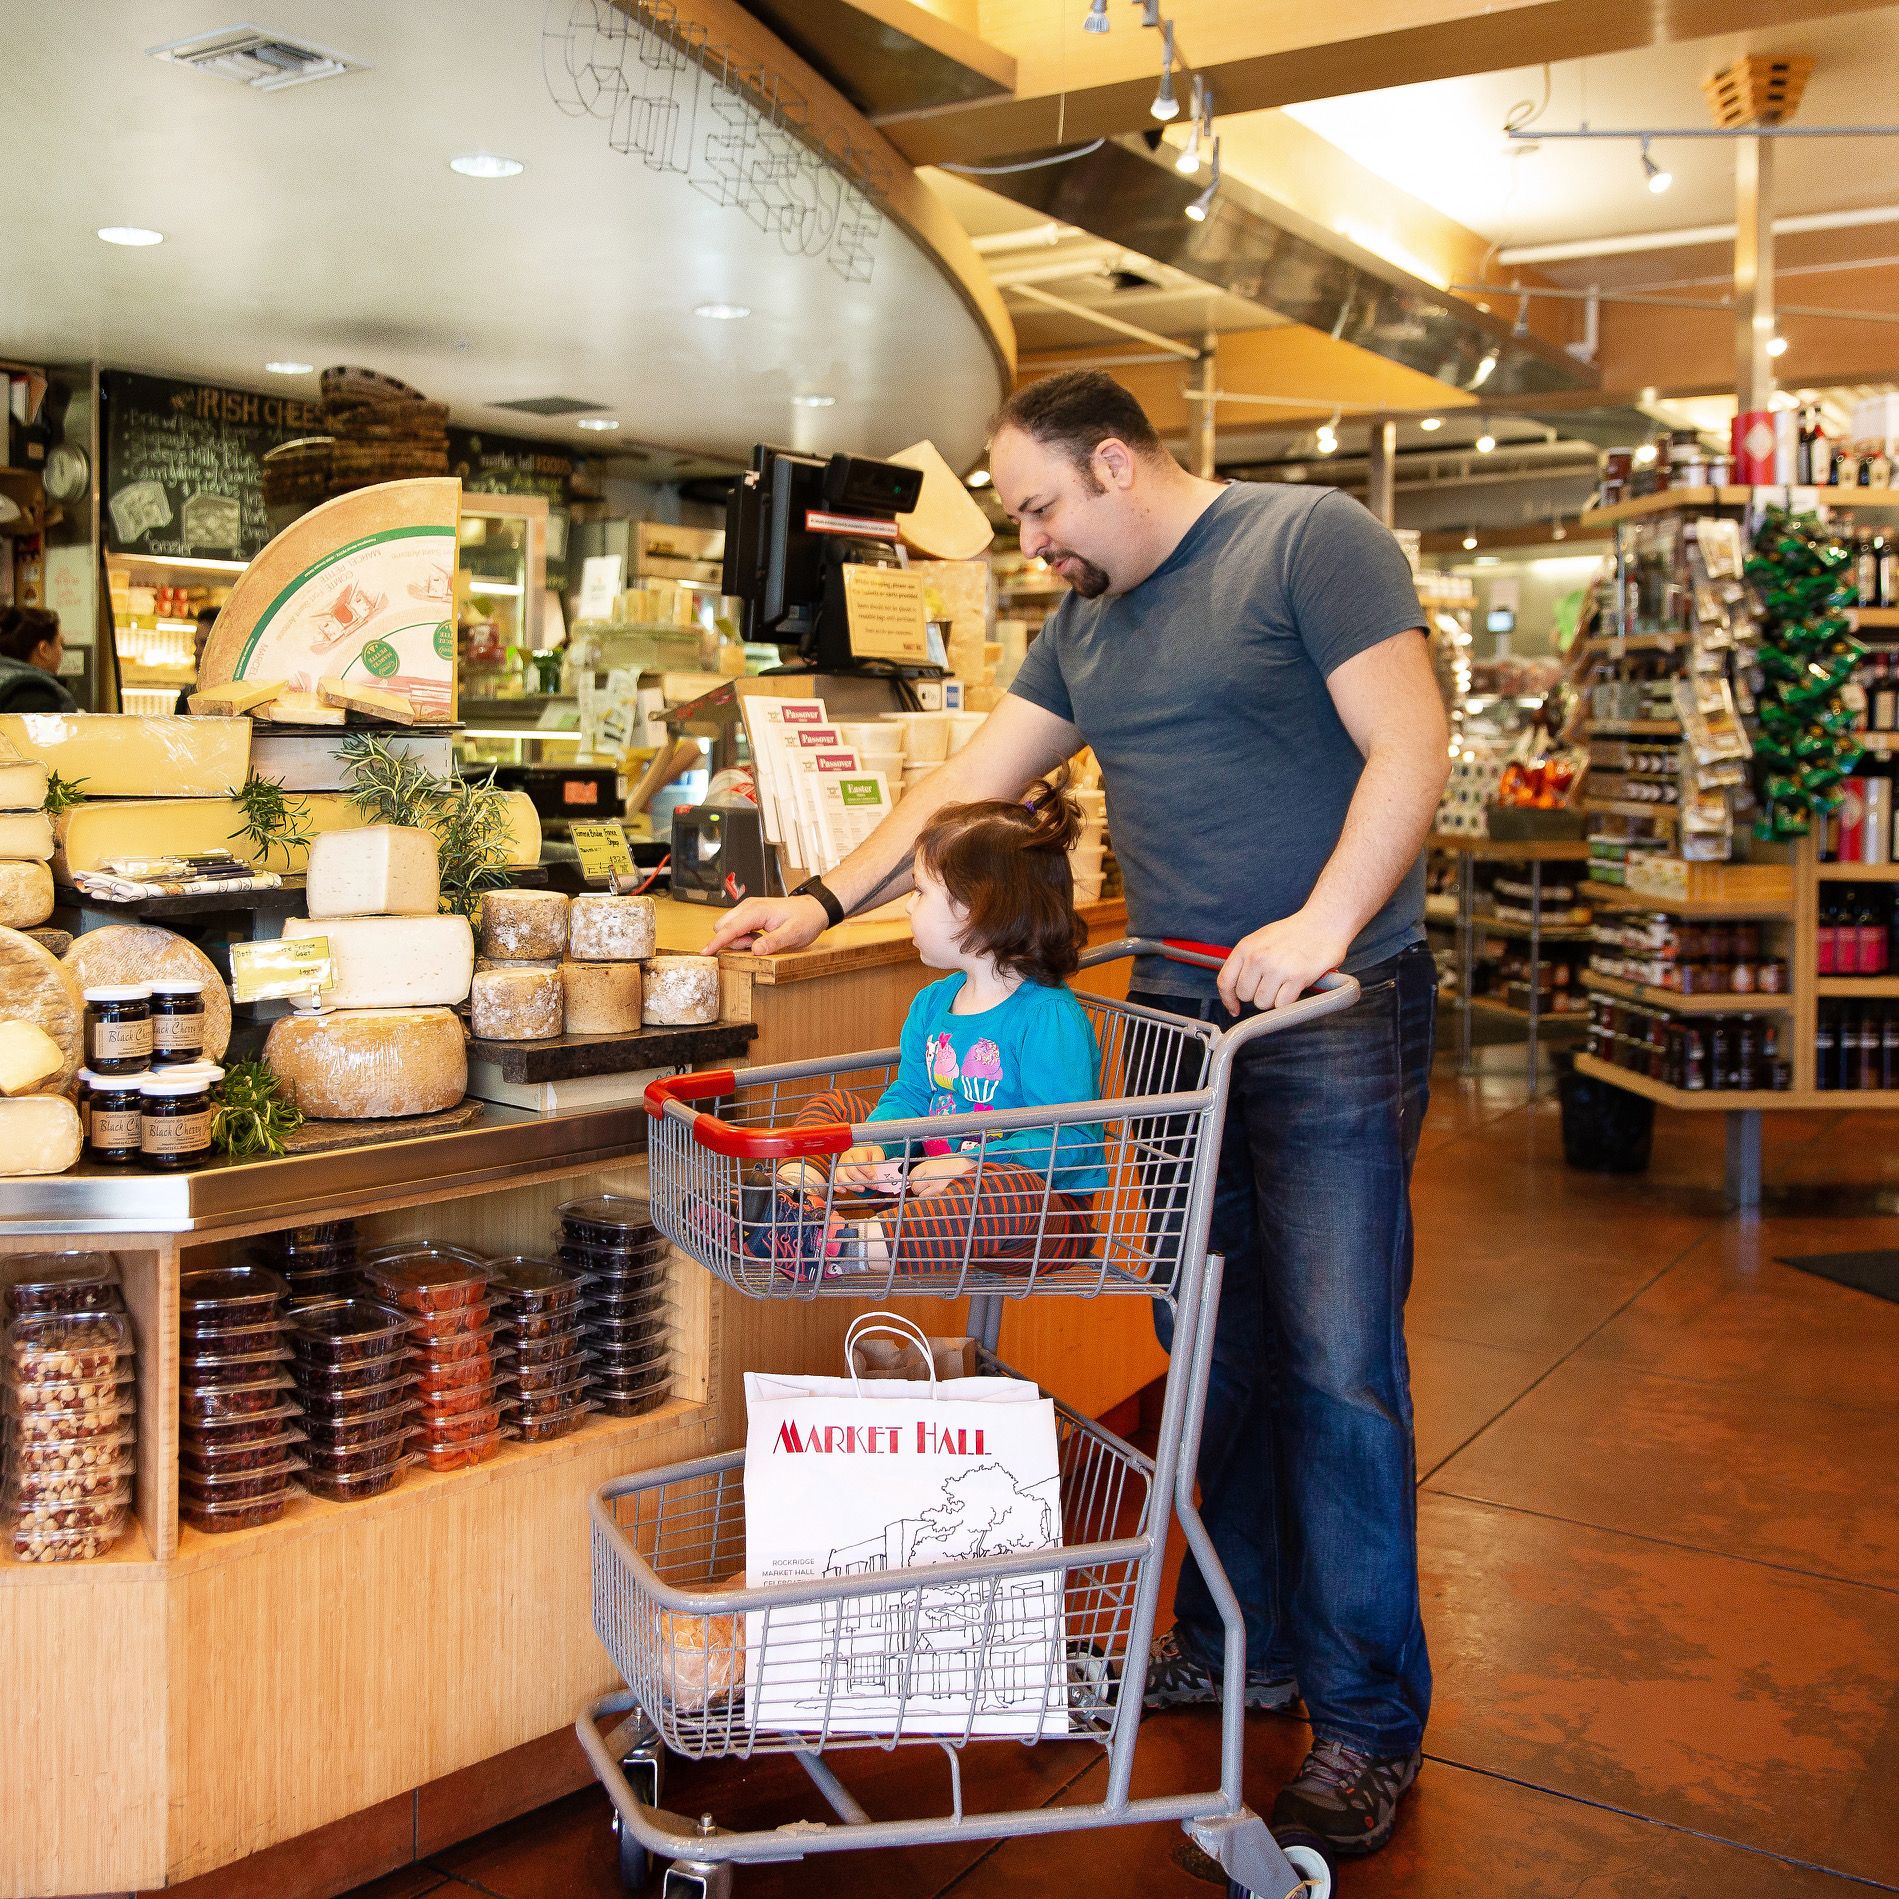 Market Hall Foods - 5655 College AvenueNationally recognized European-style market with artisanal cheese, deli, fresh pasta, specialty groceries and more.